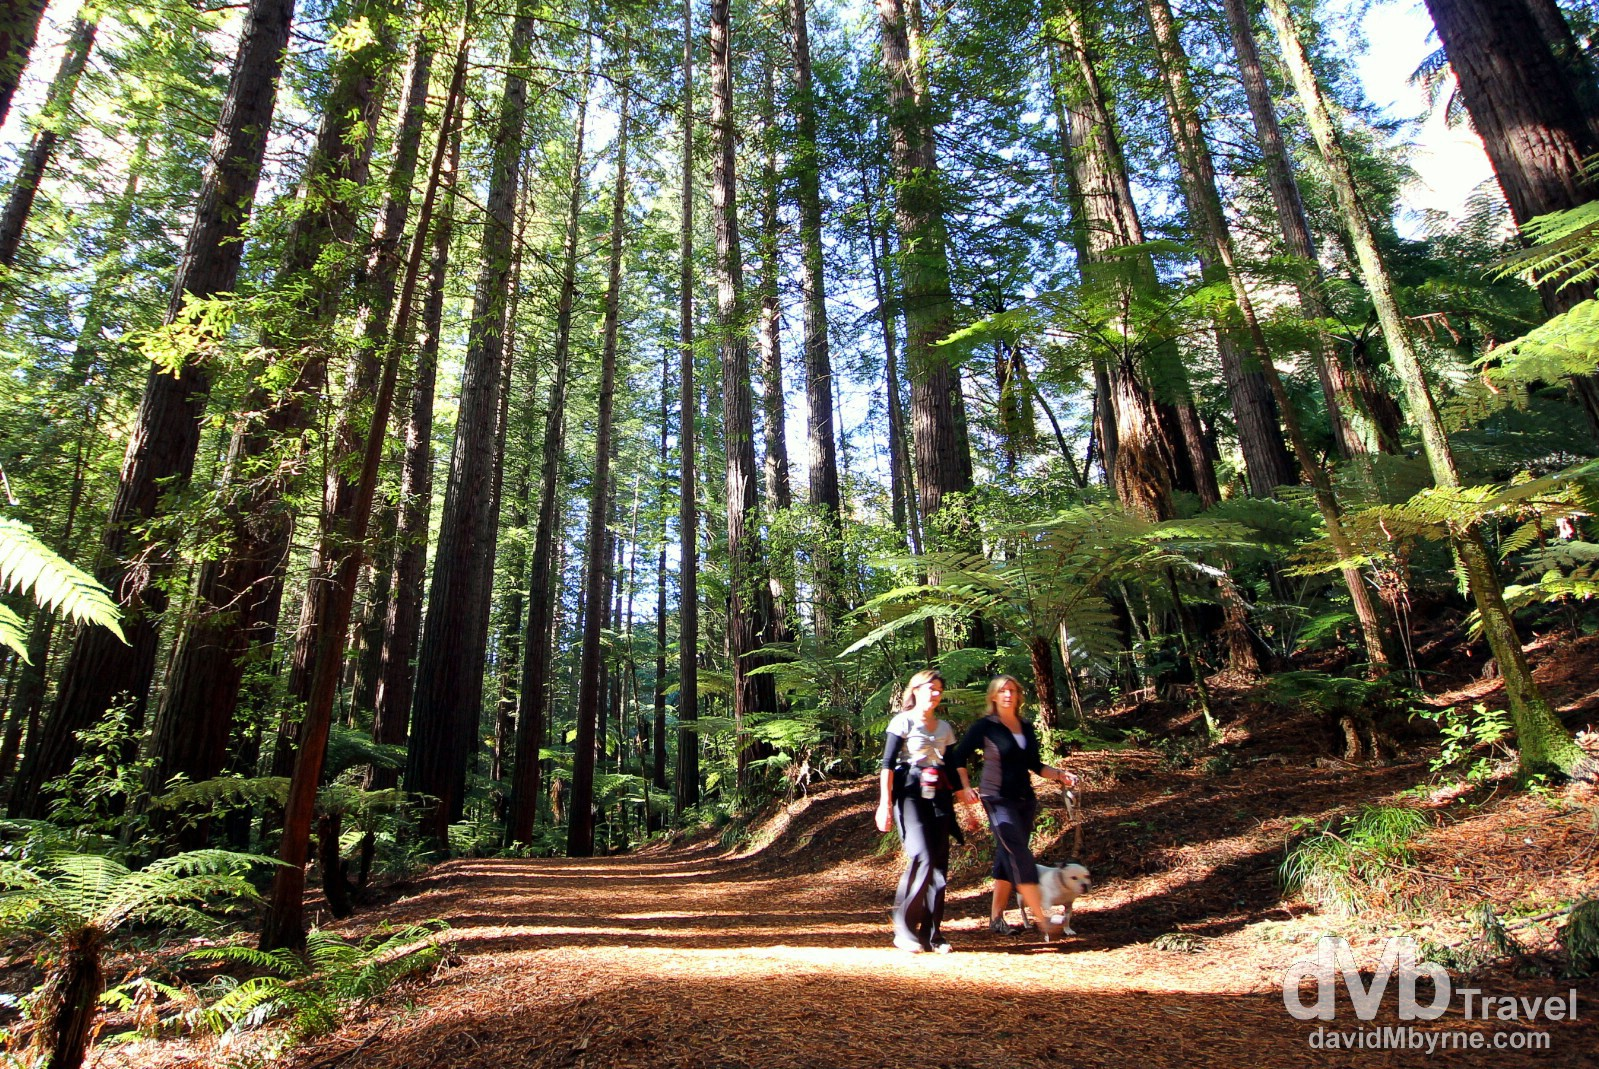 Taking a stroll in the Whakarewarewa Forest on the outskirts of Rotorua, North Island, New Zealand. May 6th 2012.